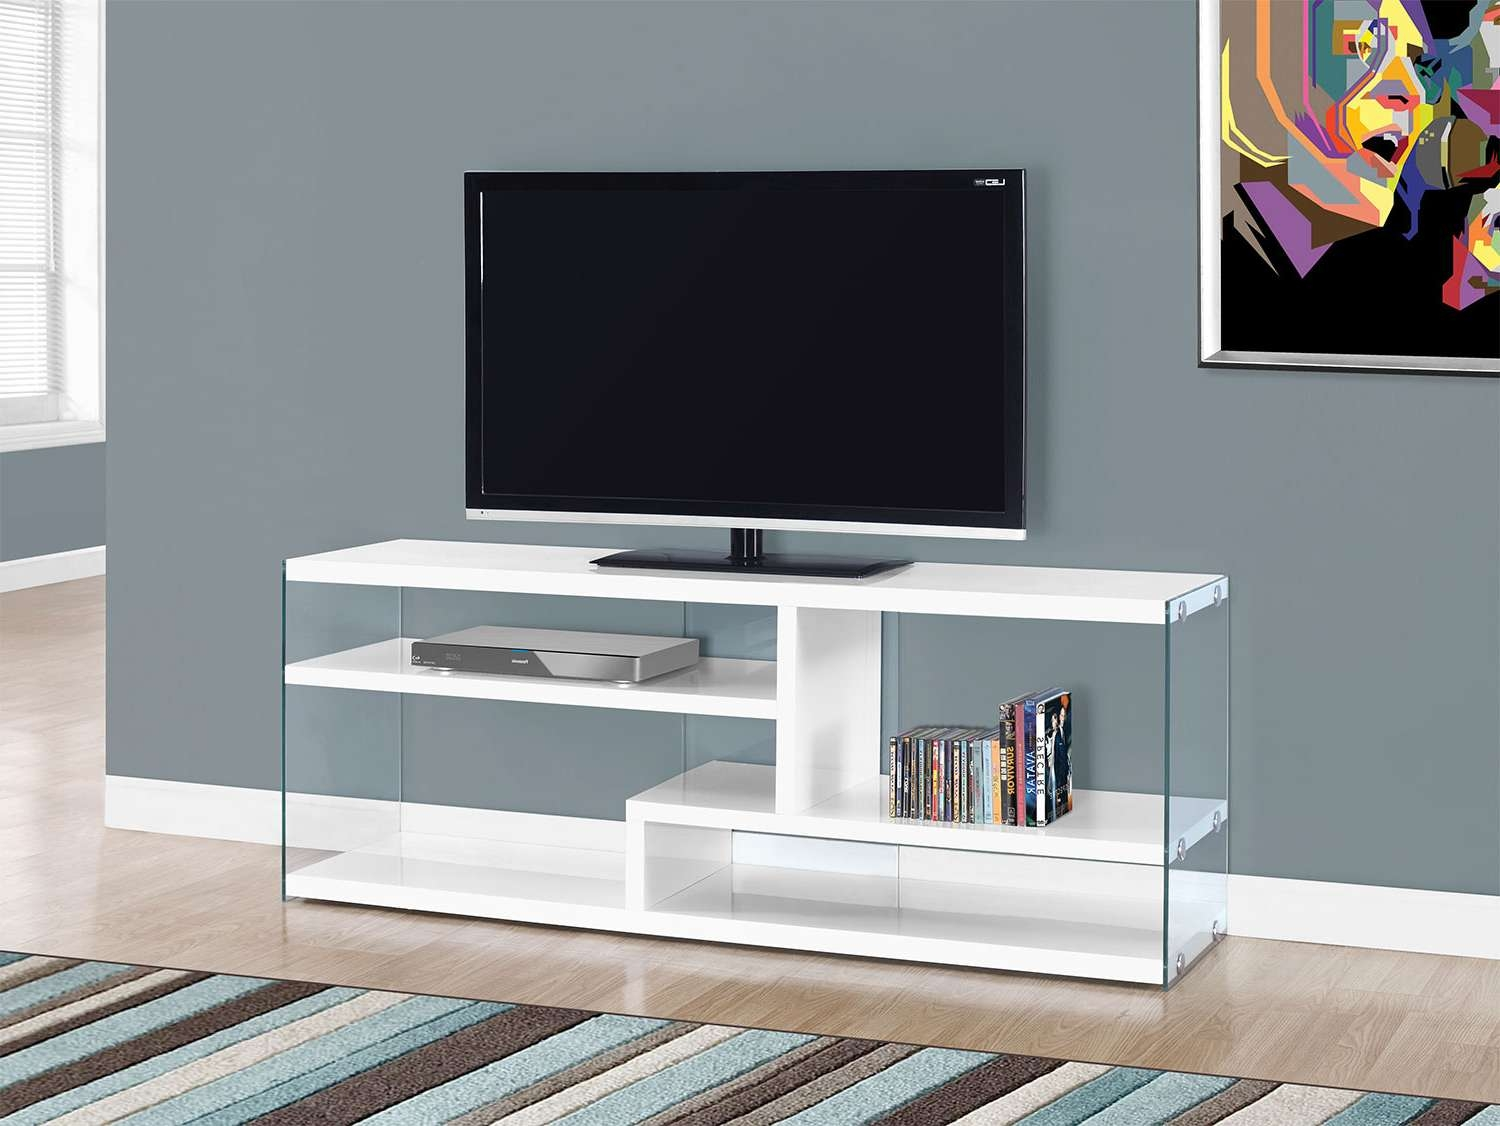 Zara Tv Stand – White | Leon's Throughout White Glass Tv Stands (View 13 of 15)